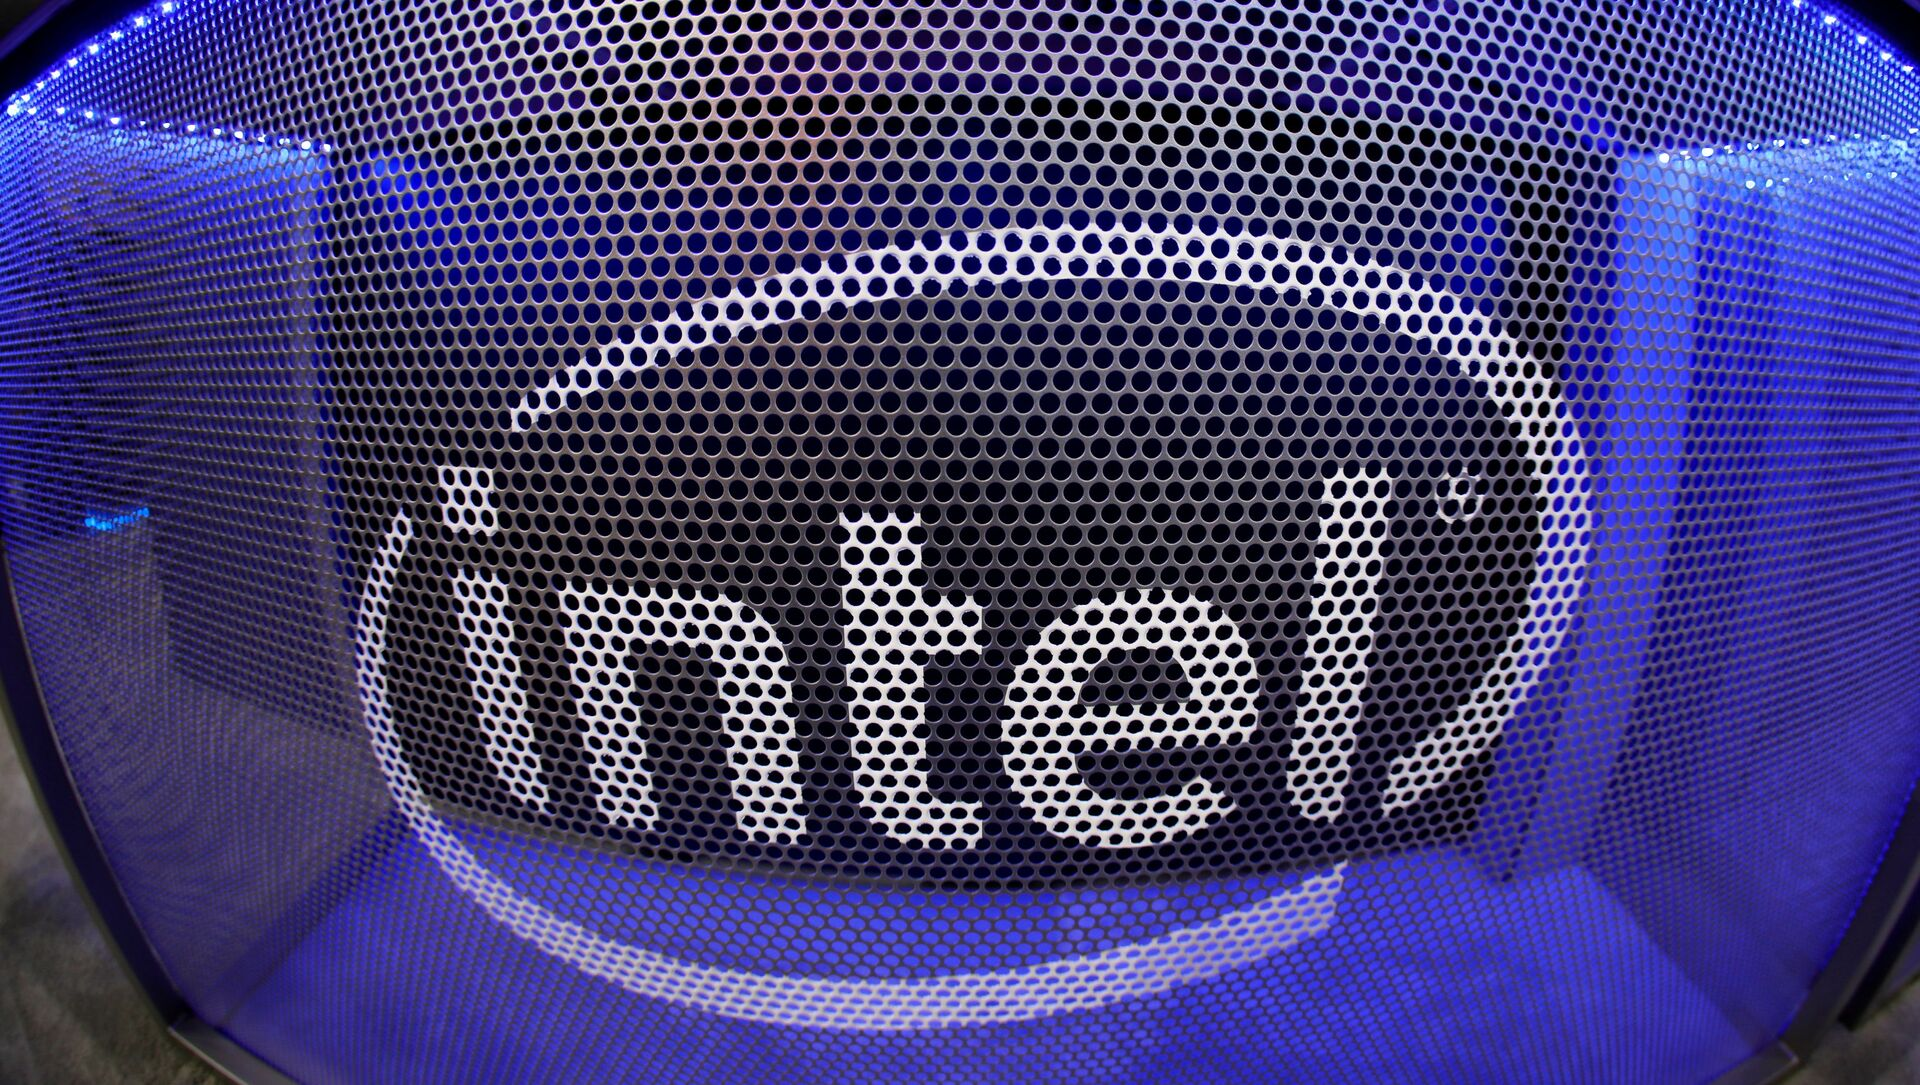 Computer chip maker Intel's logo is shown on a gaming computer display during the opening day of E3, the annual video games expo revealing the latest in gaming software and hardware in Los Angeles, California, U.S., June 11, 2019.   - Sputnik International, 1920, 25.07.2021